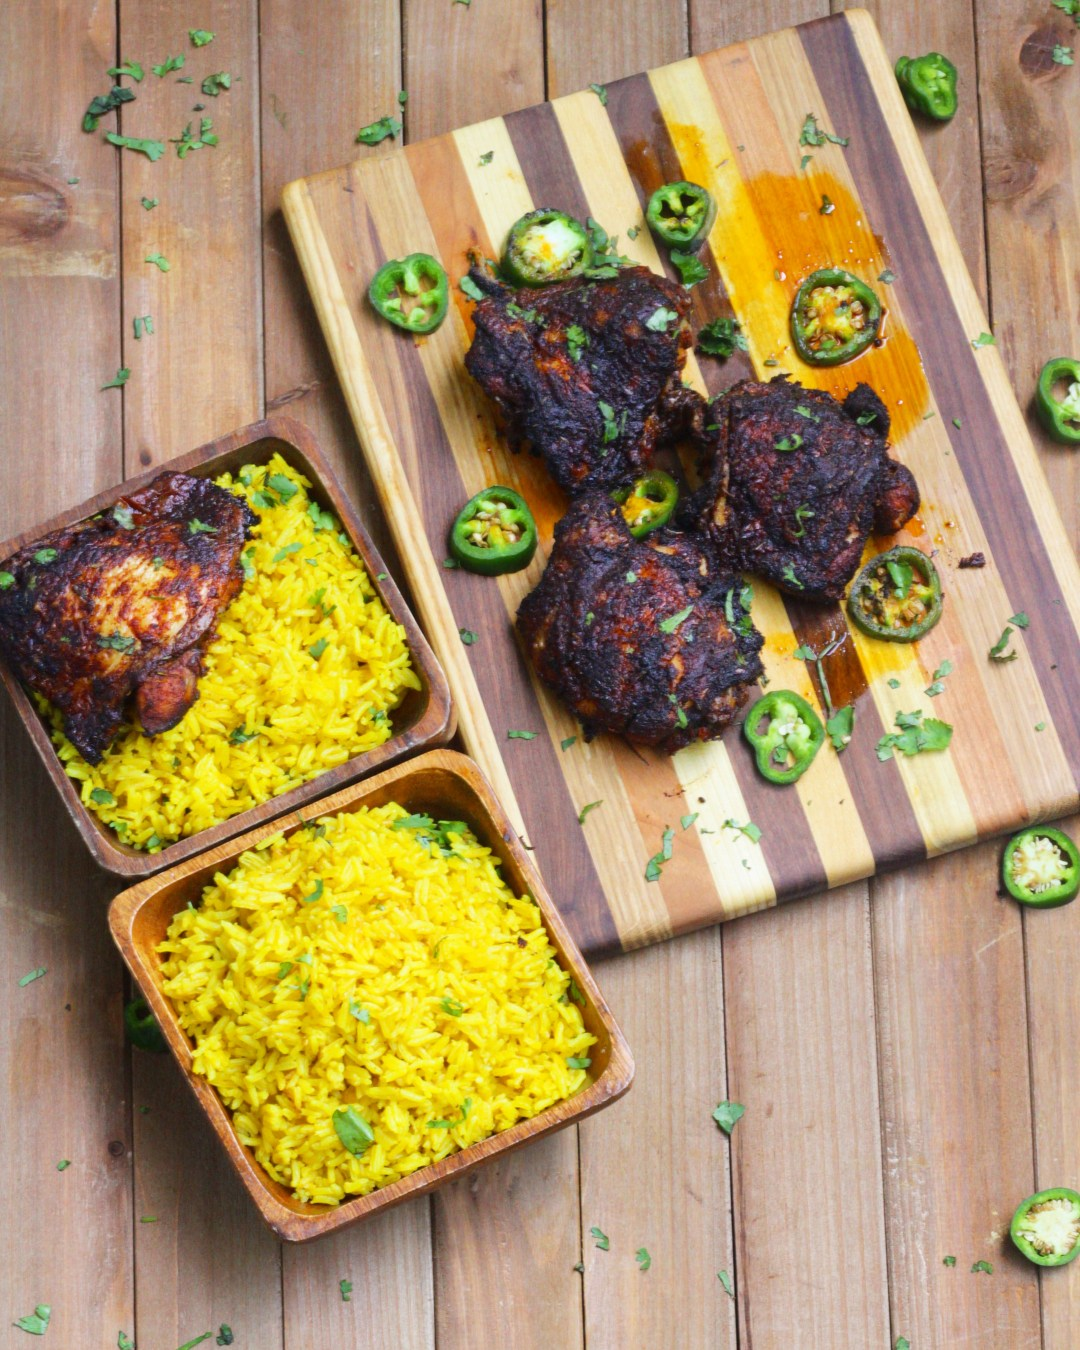 No Dinner Plans? Try these Harissa Chicken Thighs with Yellow Jasmine Rice! Flavorful North African spices in both the chicken and rice!